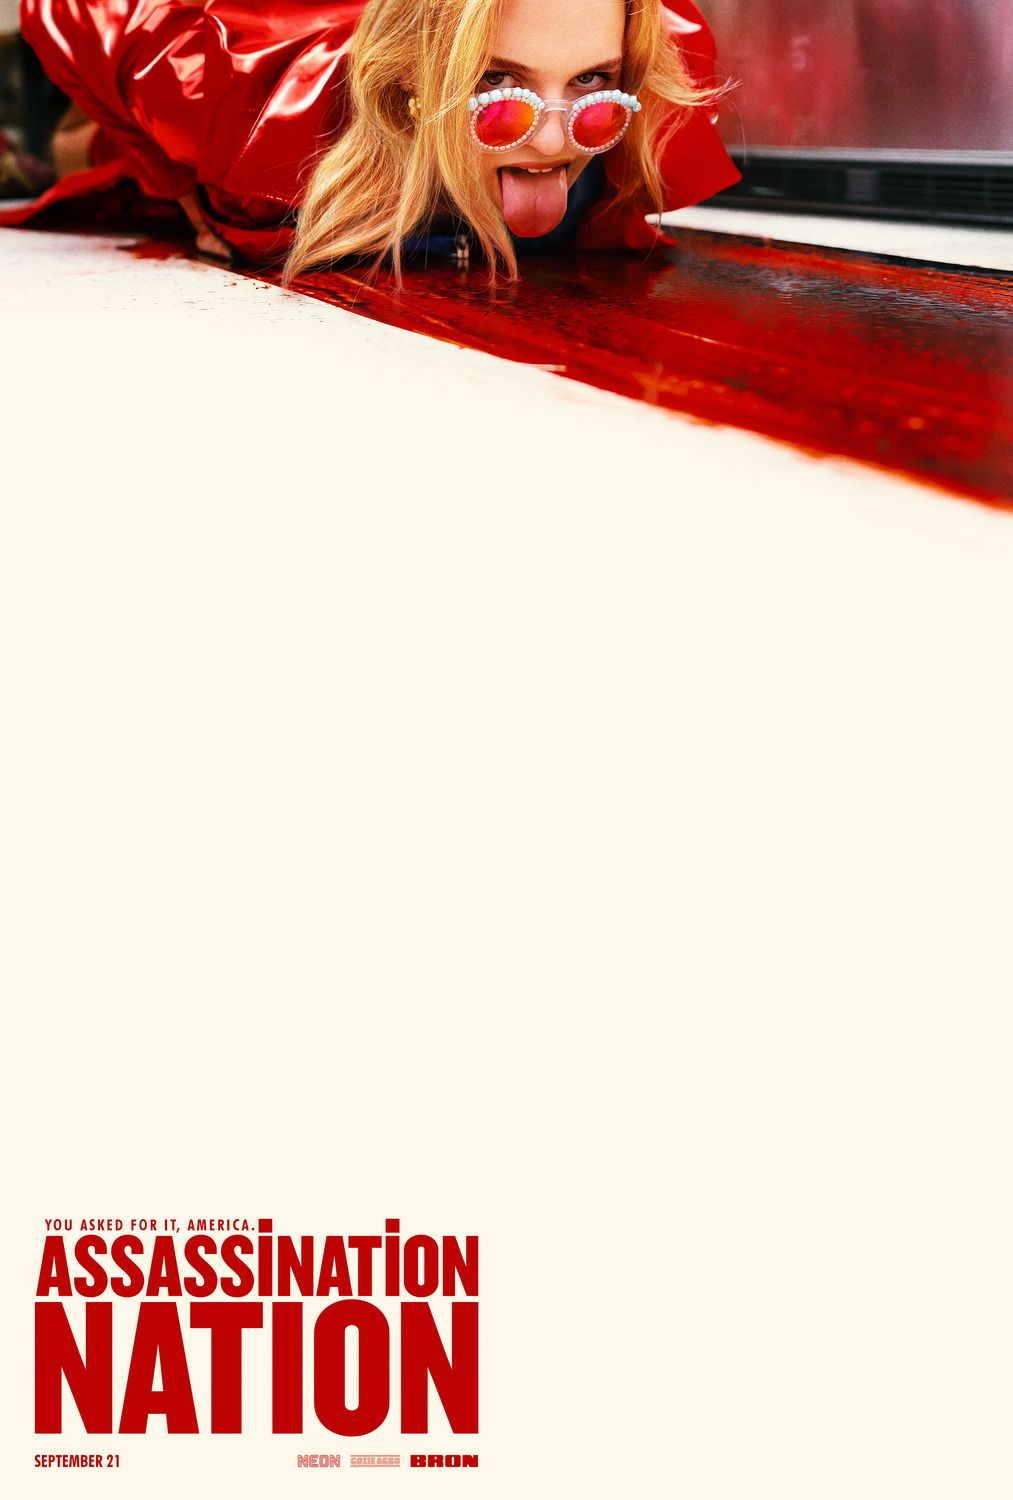 New official assassination nation movie poster movie